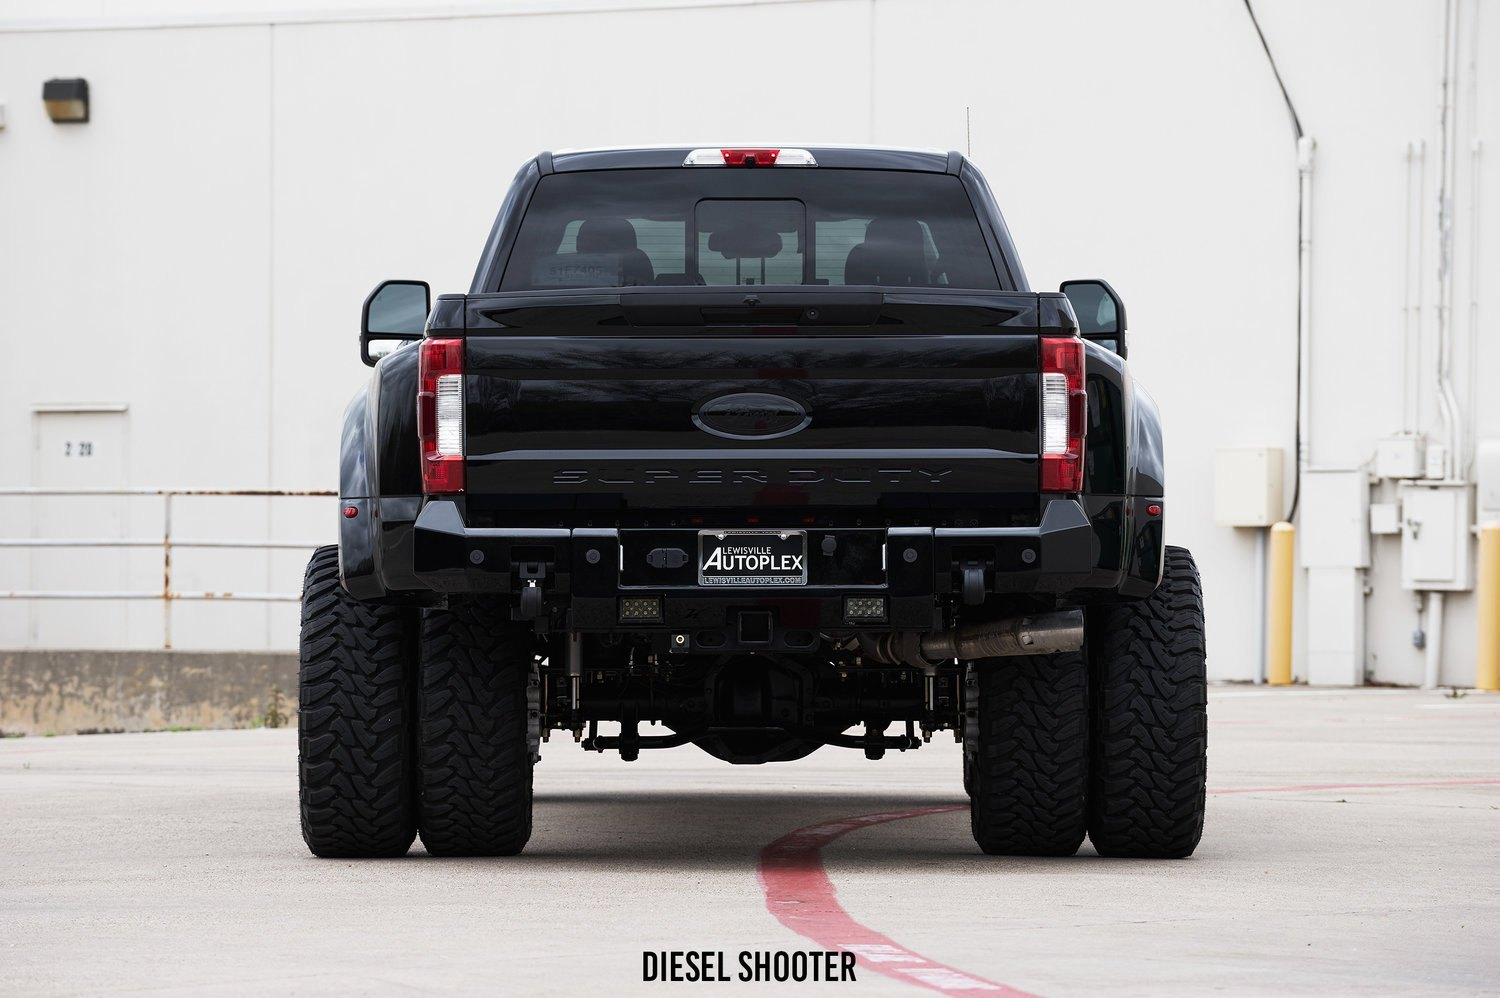 6 Inch Suspension Lift Kit on Custom Black Ford F-450 - Photo by Diesel Shooter